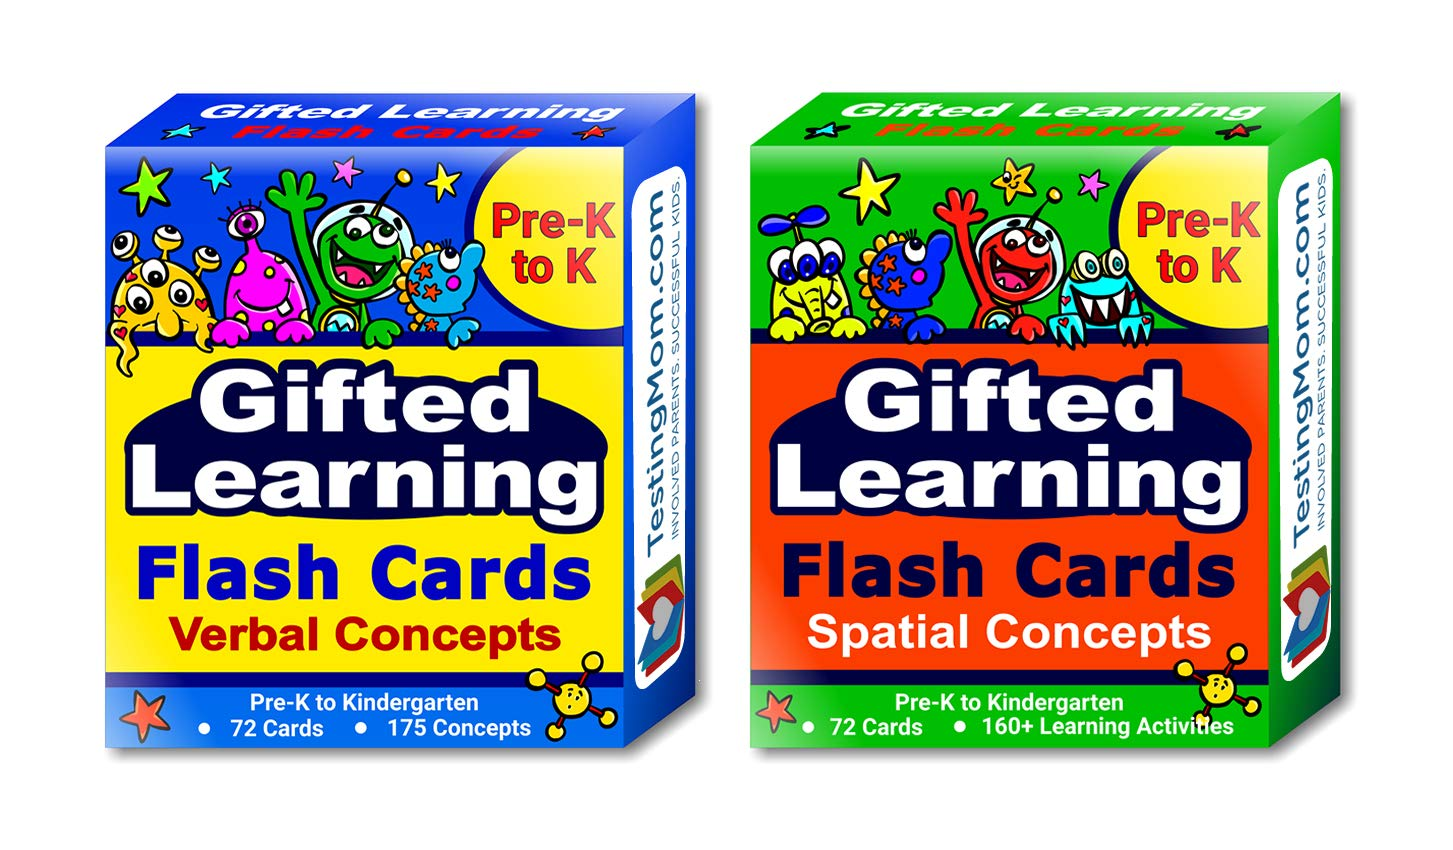 Gifted Learning Flash Cards (2-Pack) - Verbal and Spatial Concepts for Pre-K - Kindergarten - Practice for CogAT test, OLSAT test, NNAT test, NYC Gifted and Talented, ITBS test, WISC, WPPSI, AABL by TestingMom.com